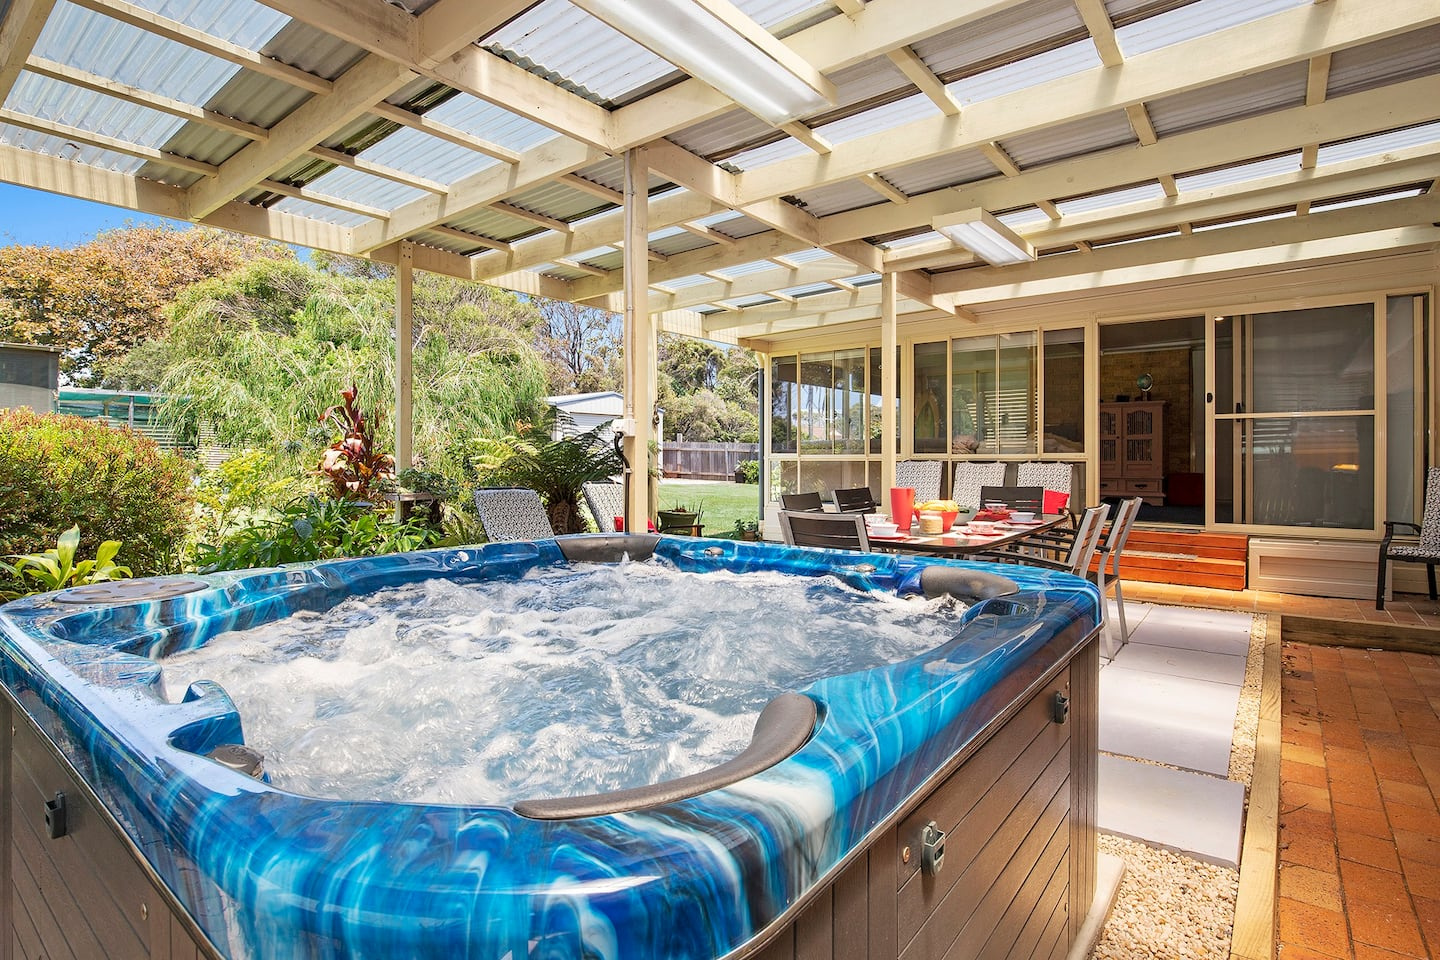 jacuzzi looking out on to covered outside entertainment area and lush garden to side